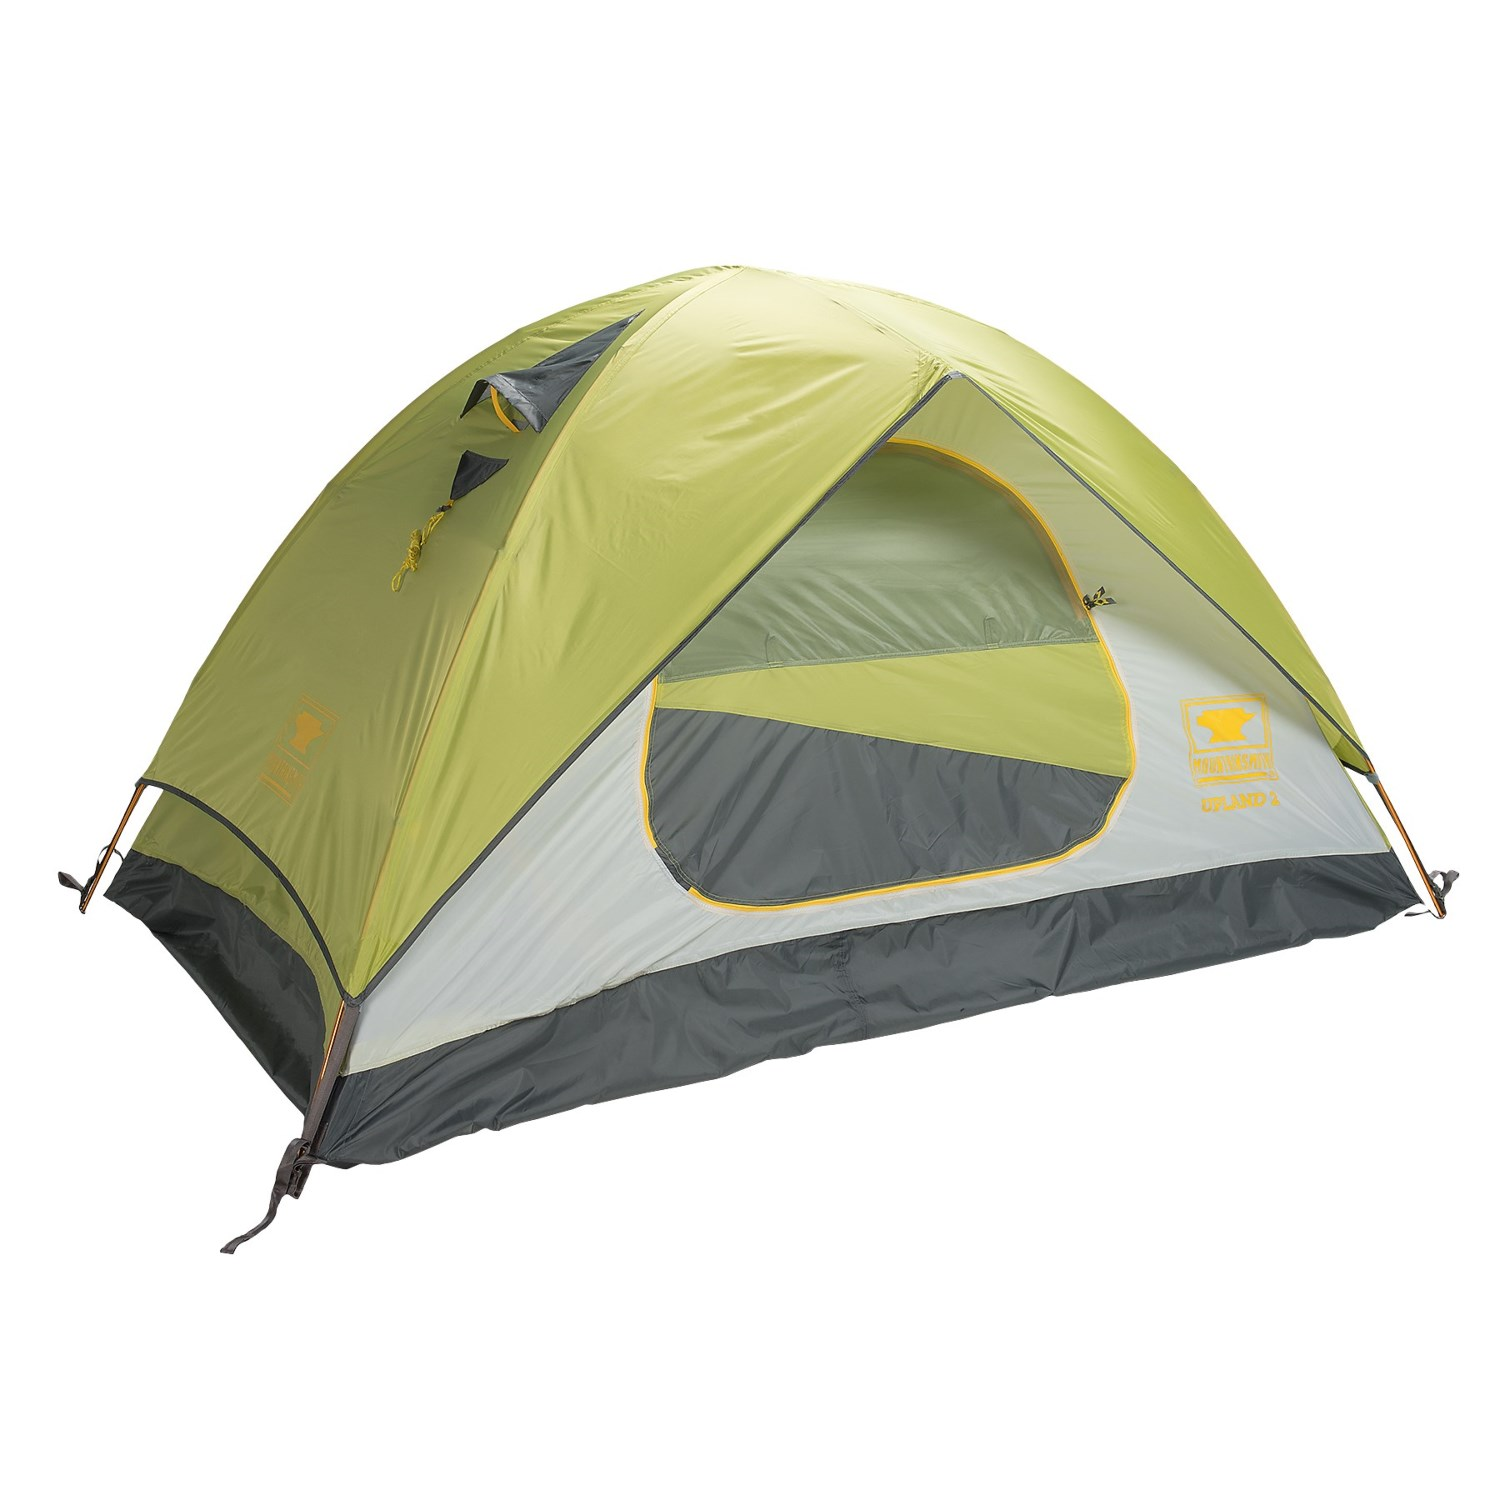 Mountainsmith Upland Tent - 2-Person 3-Season  sc 1 st  Sierra Trading Post & Mountainsmith Upland Tent - 2-Person 3-Season - Save 35%